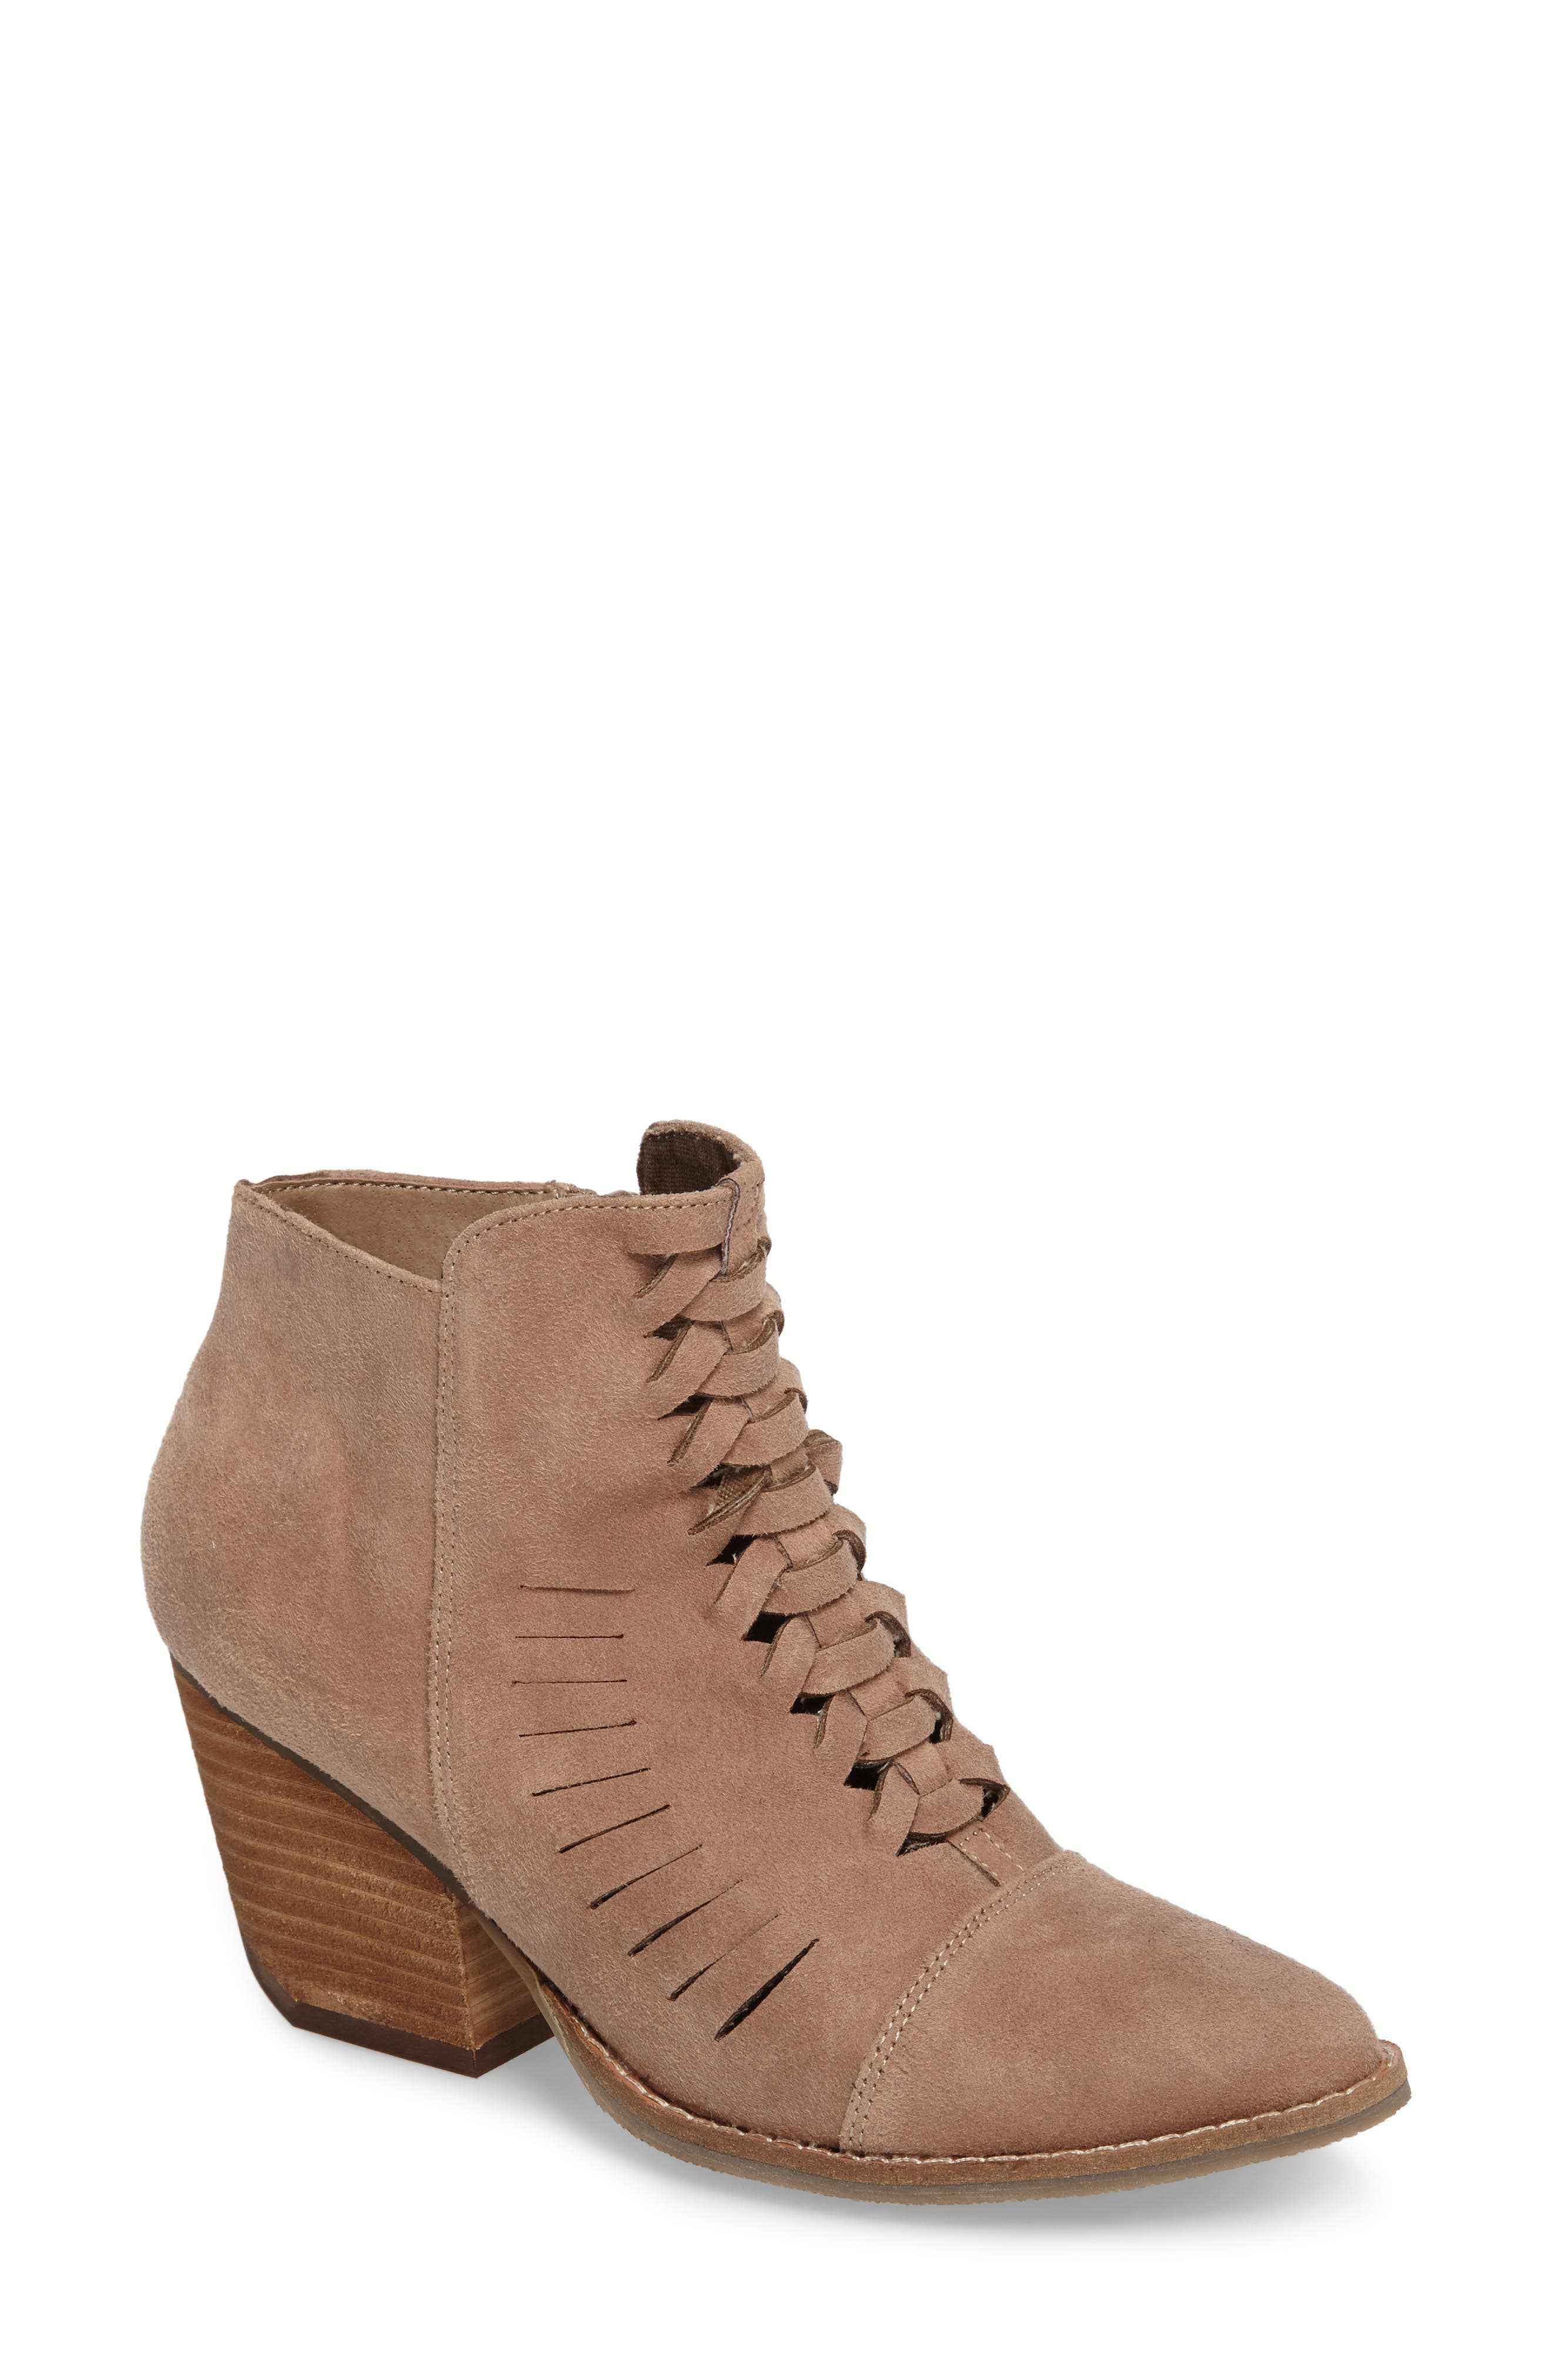 Ally Woven Bootie,                         Main,                         color,